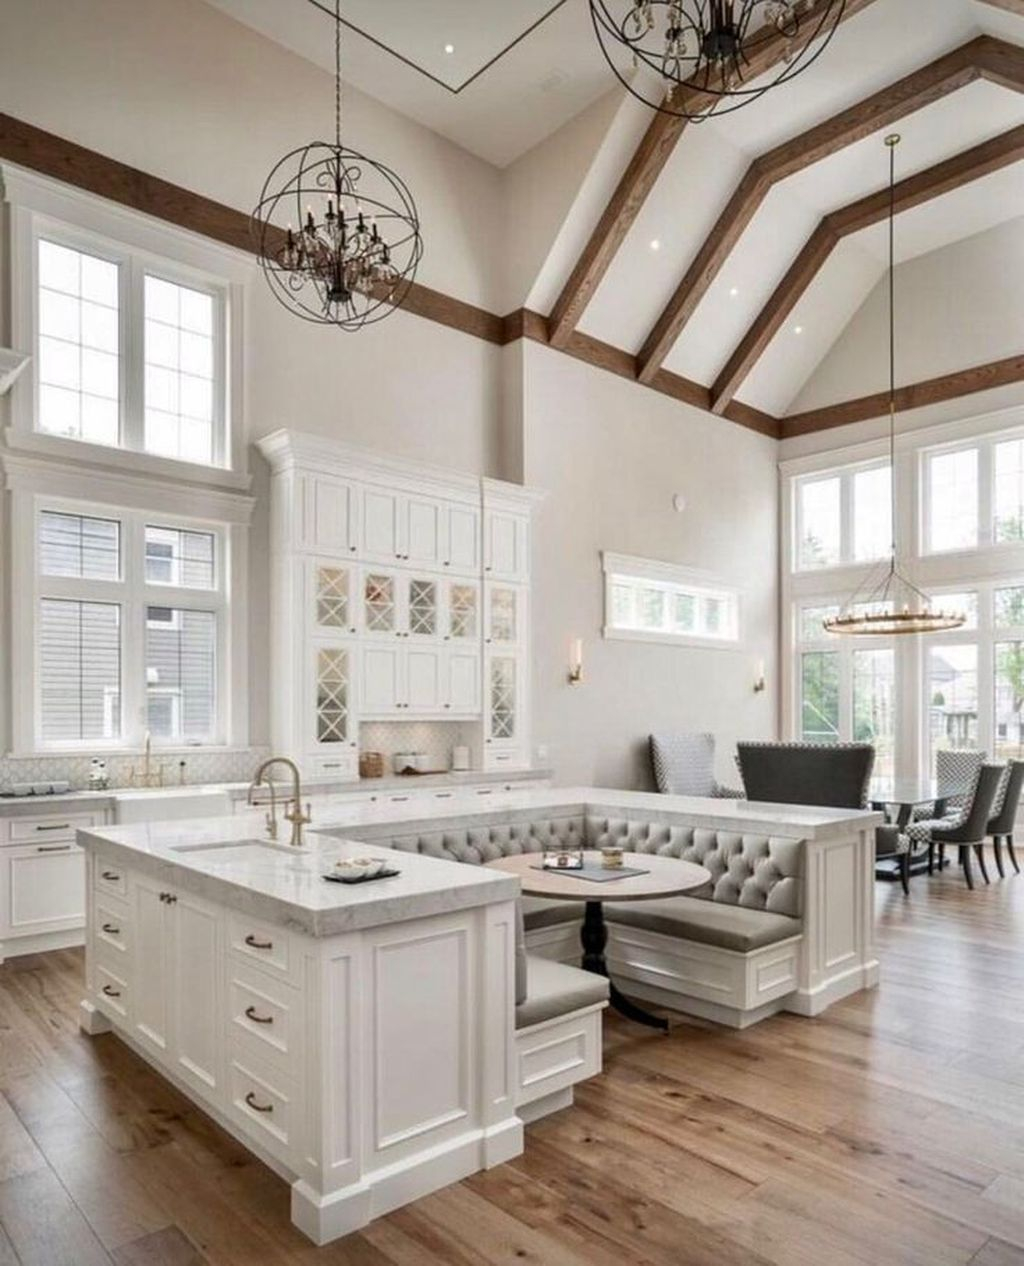 Adorable Home Interior Remodel Design Ideas To Try Asap 25